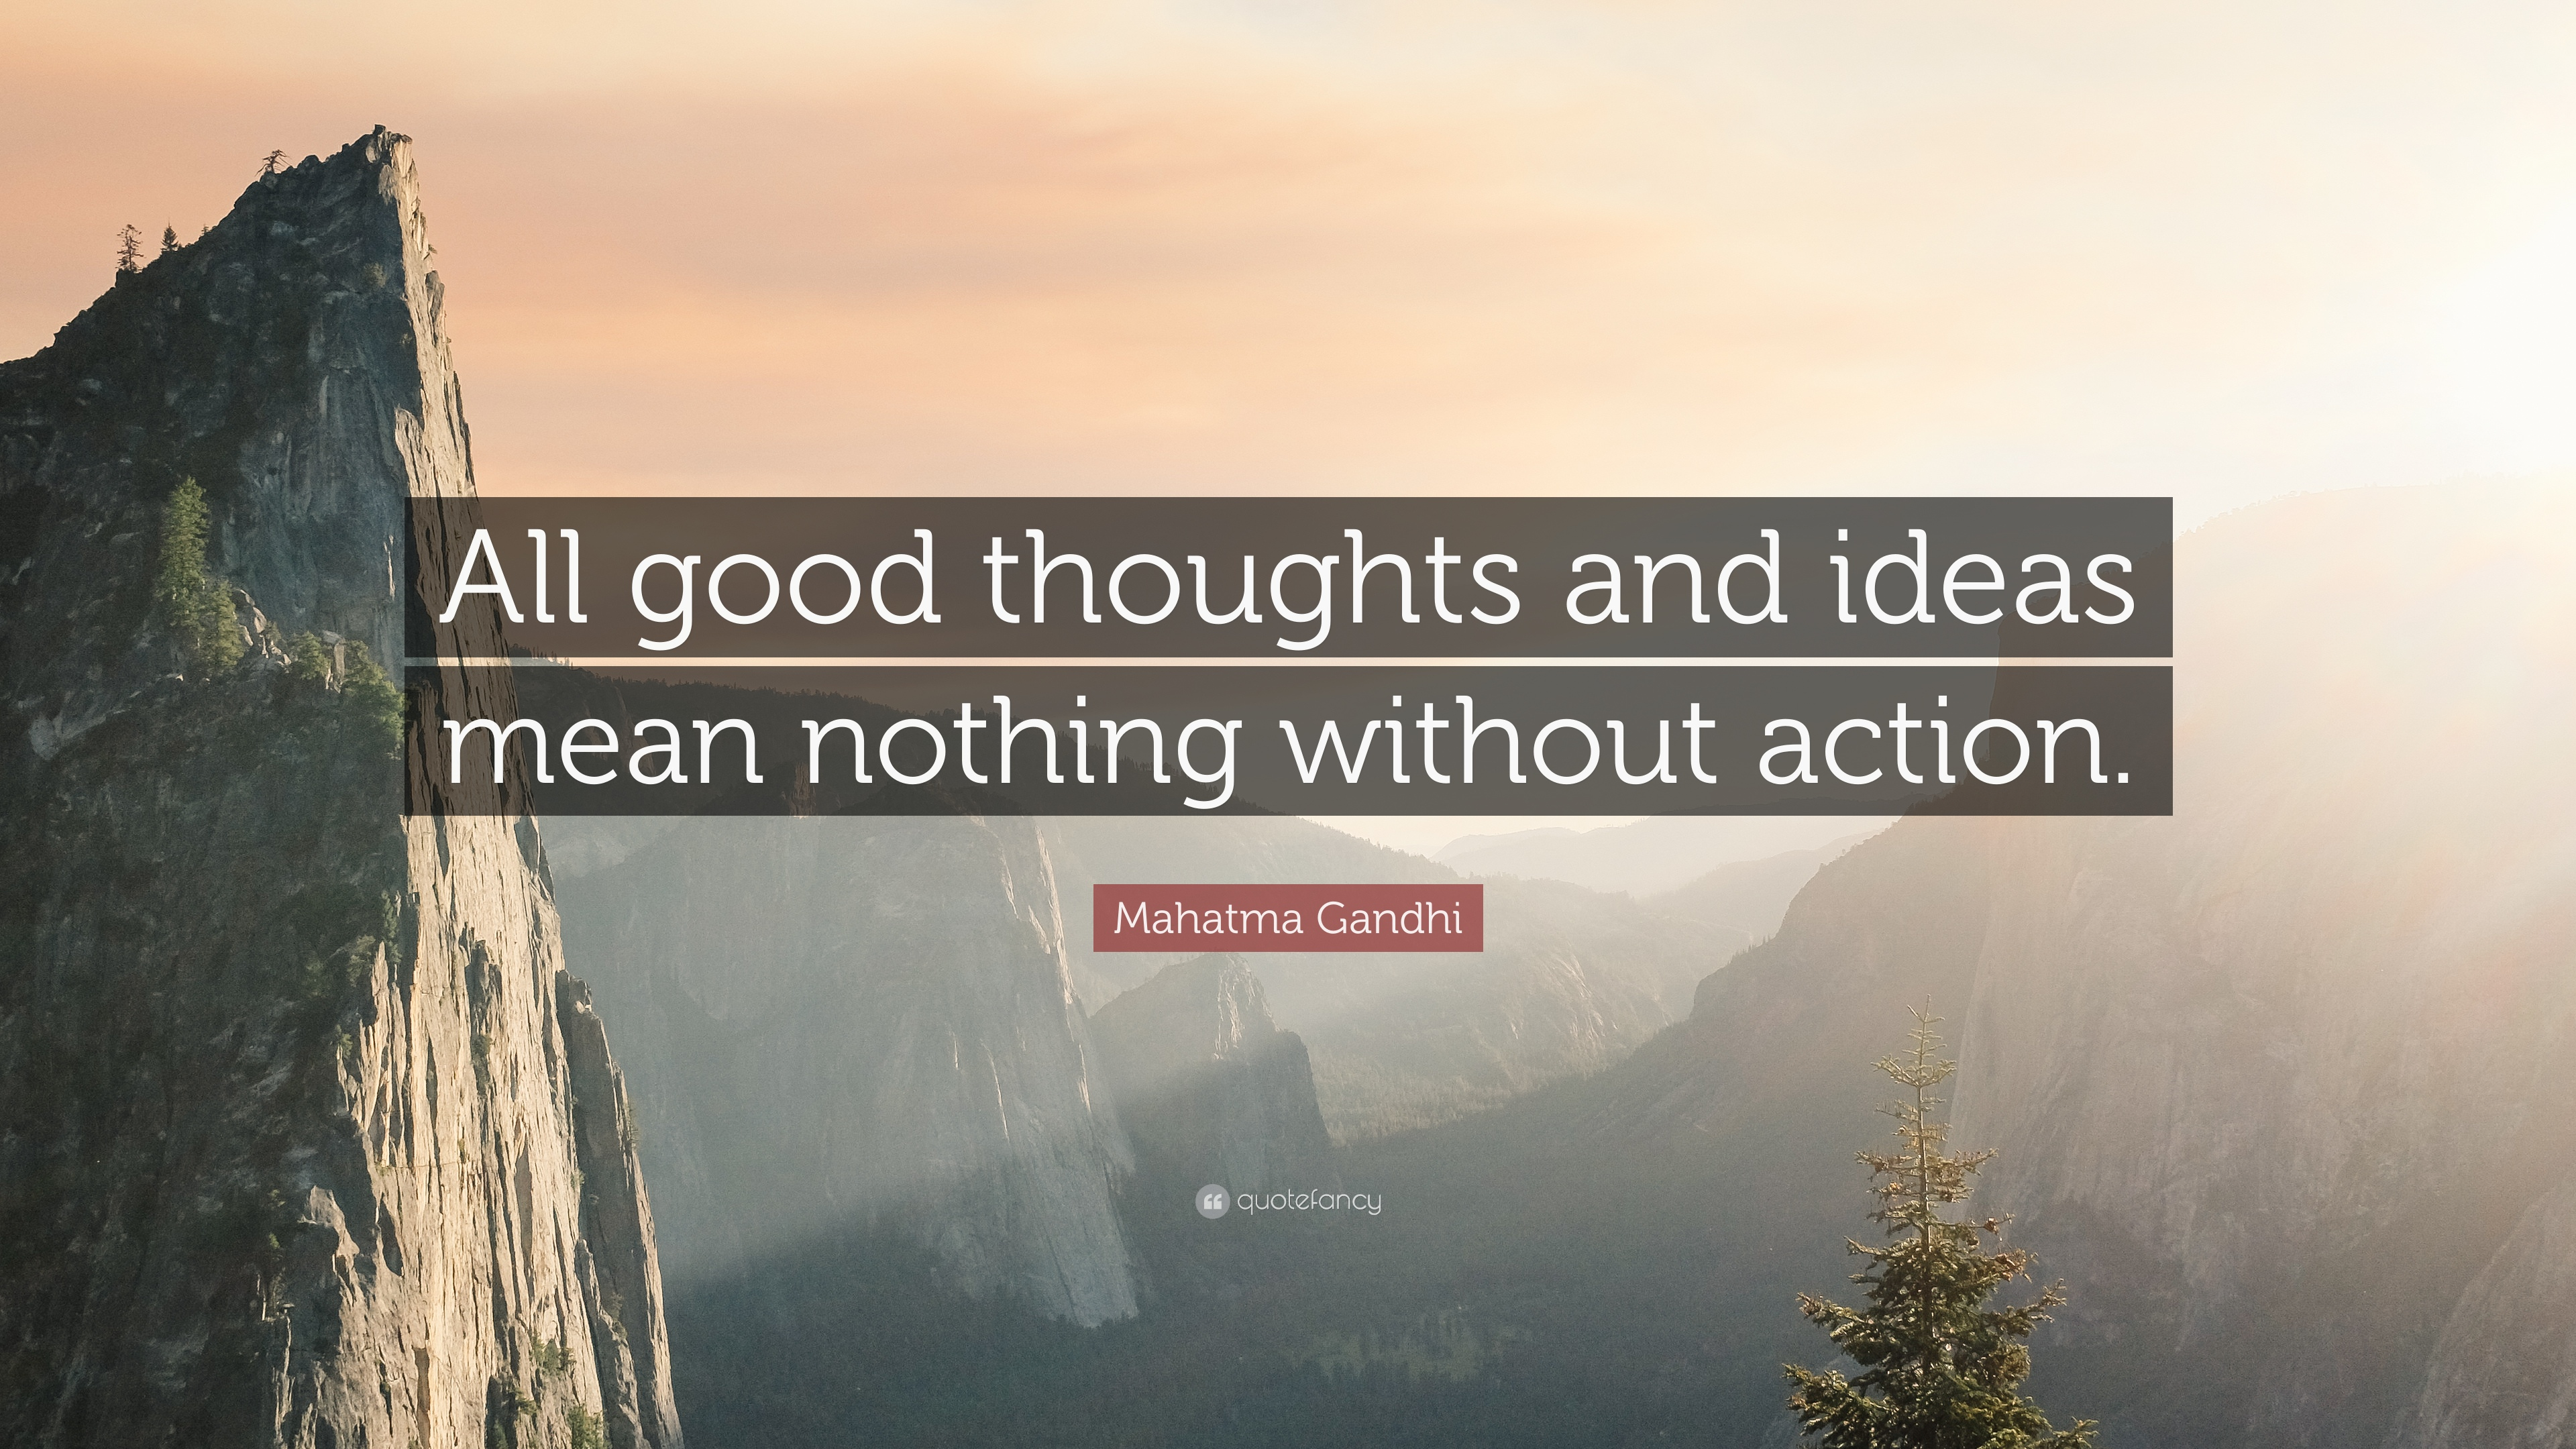 mahatma gandhi quote all good thoughts and ideas mean nothing